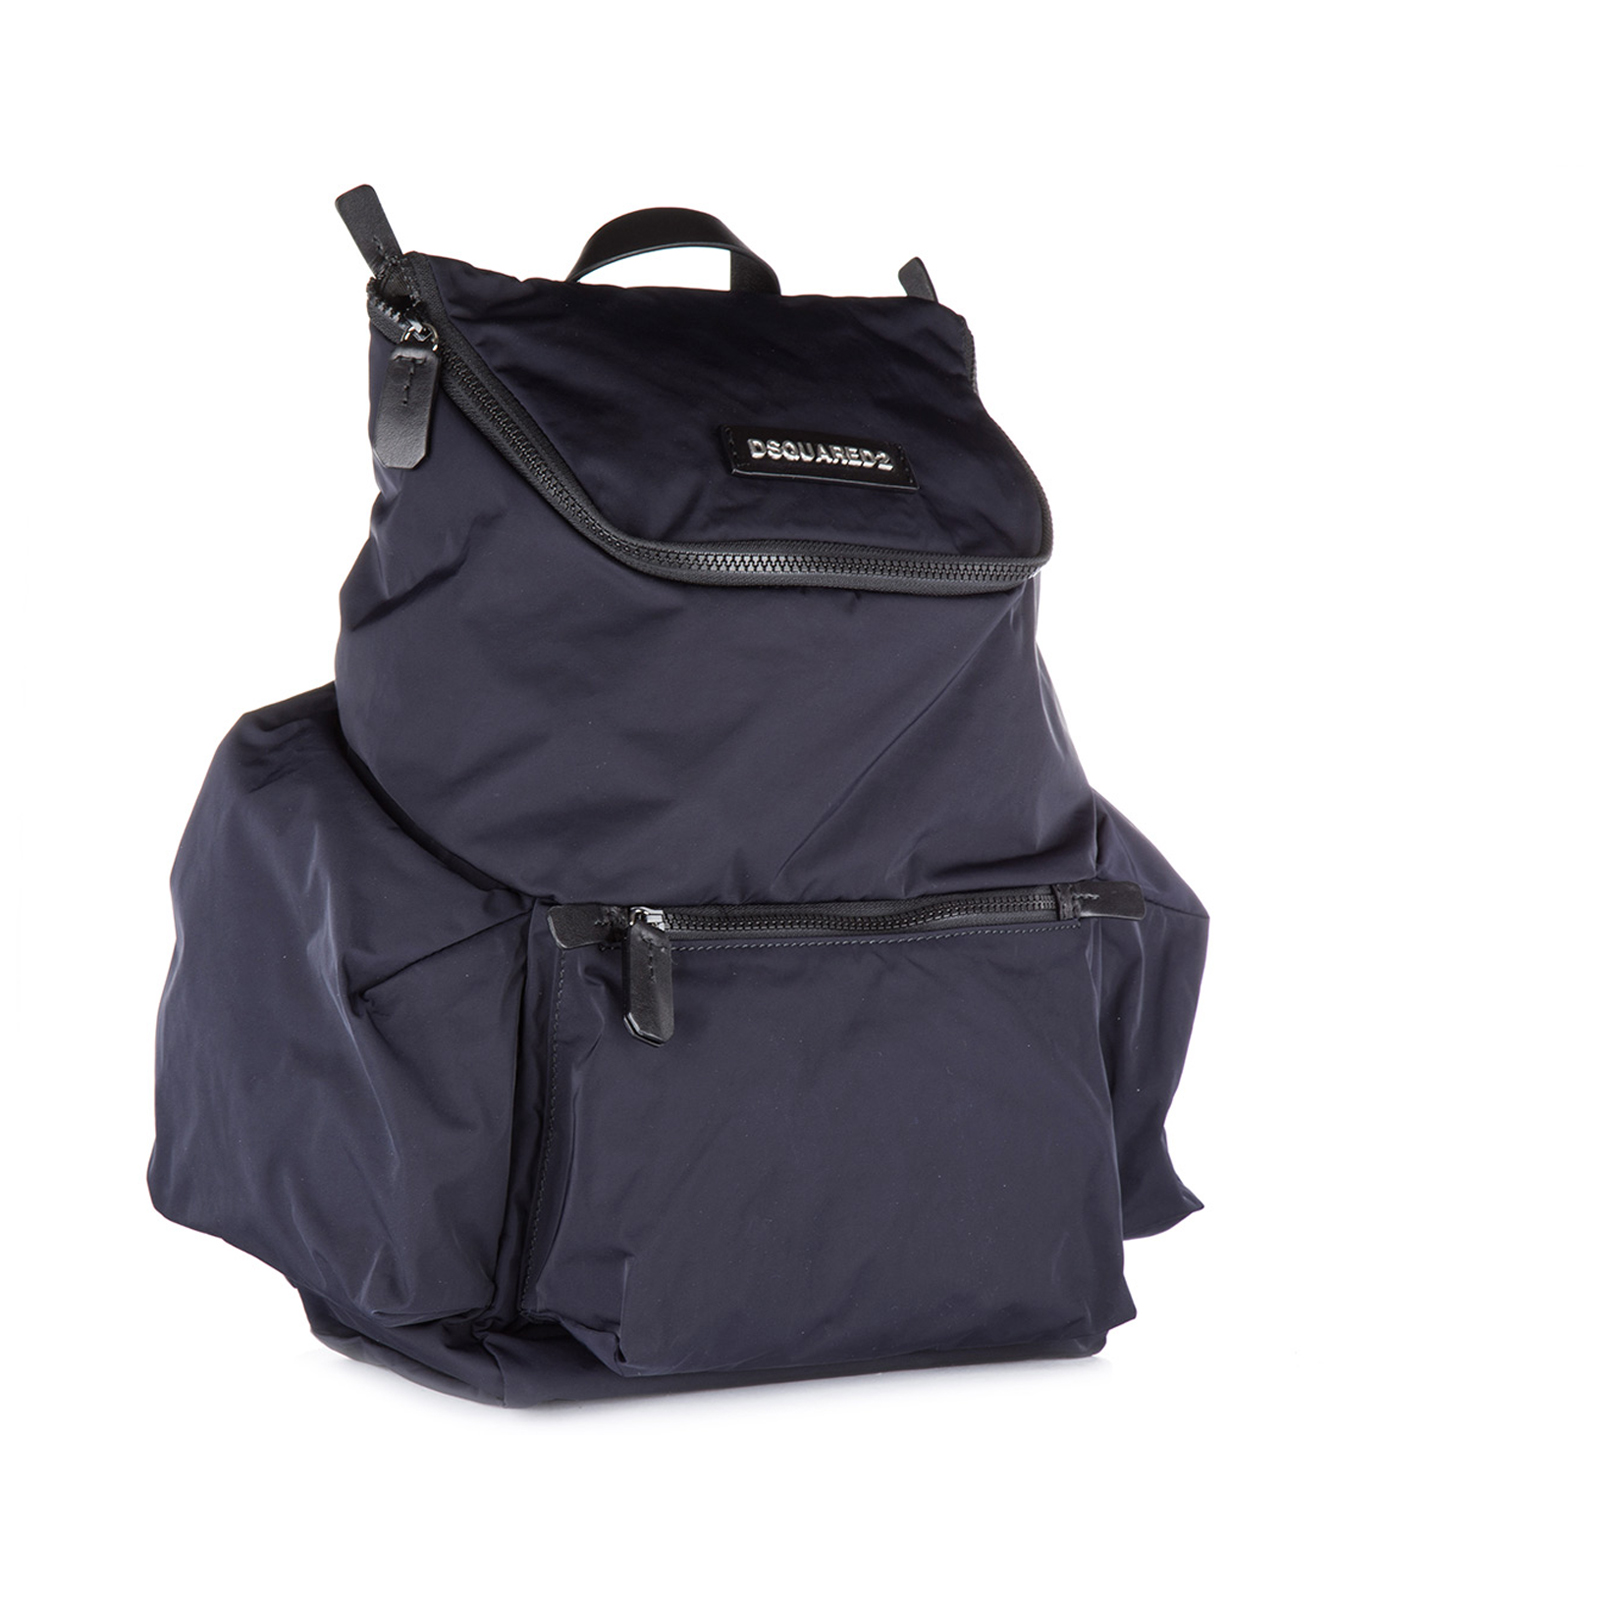 Men's nylon rucksack backpack travel  hiro